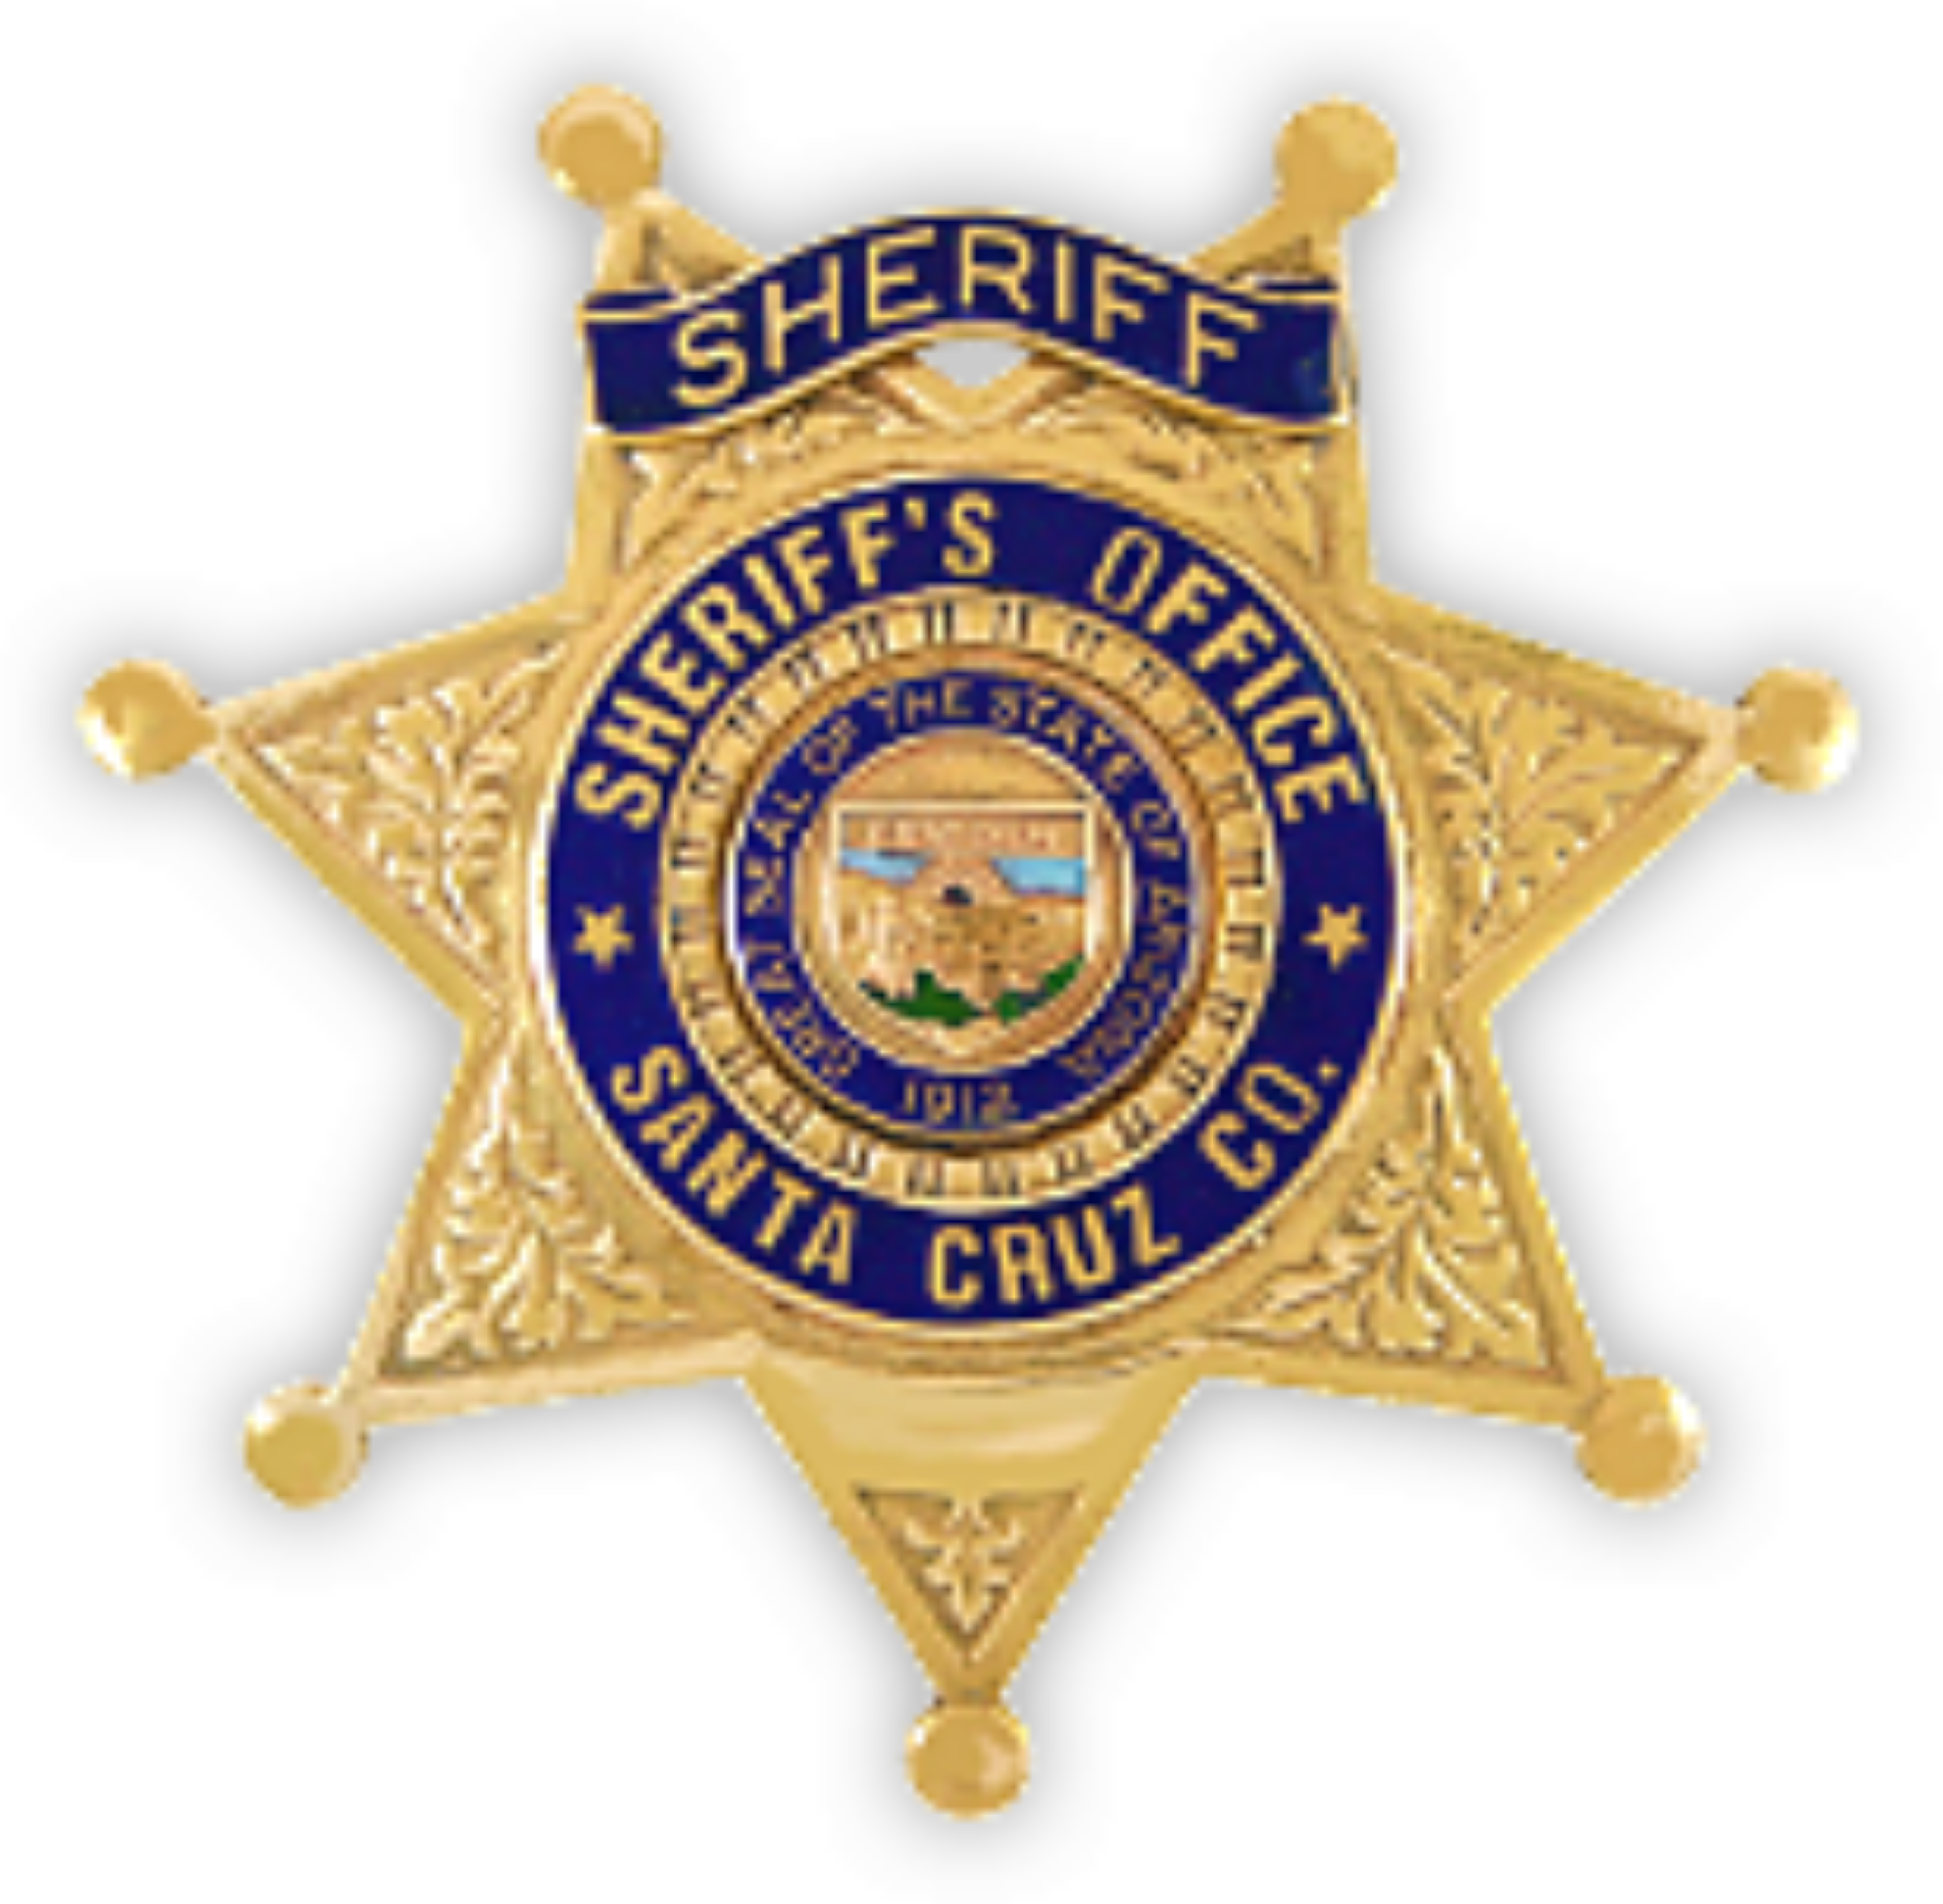 Santa Cruz County Badge